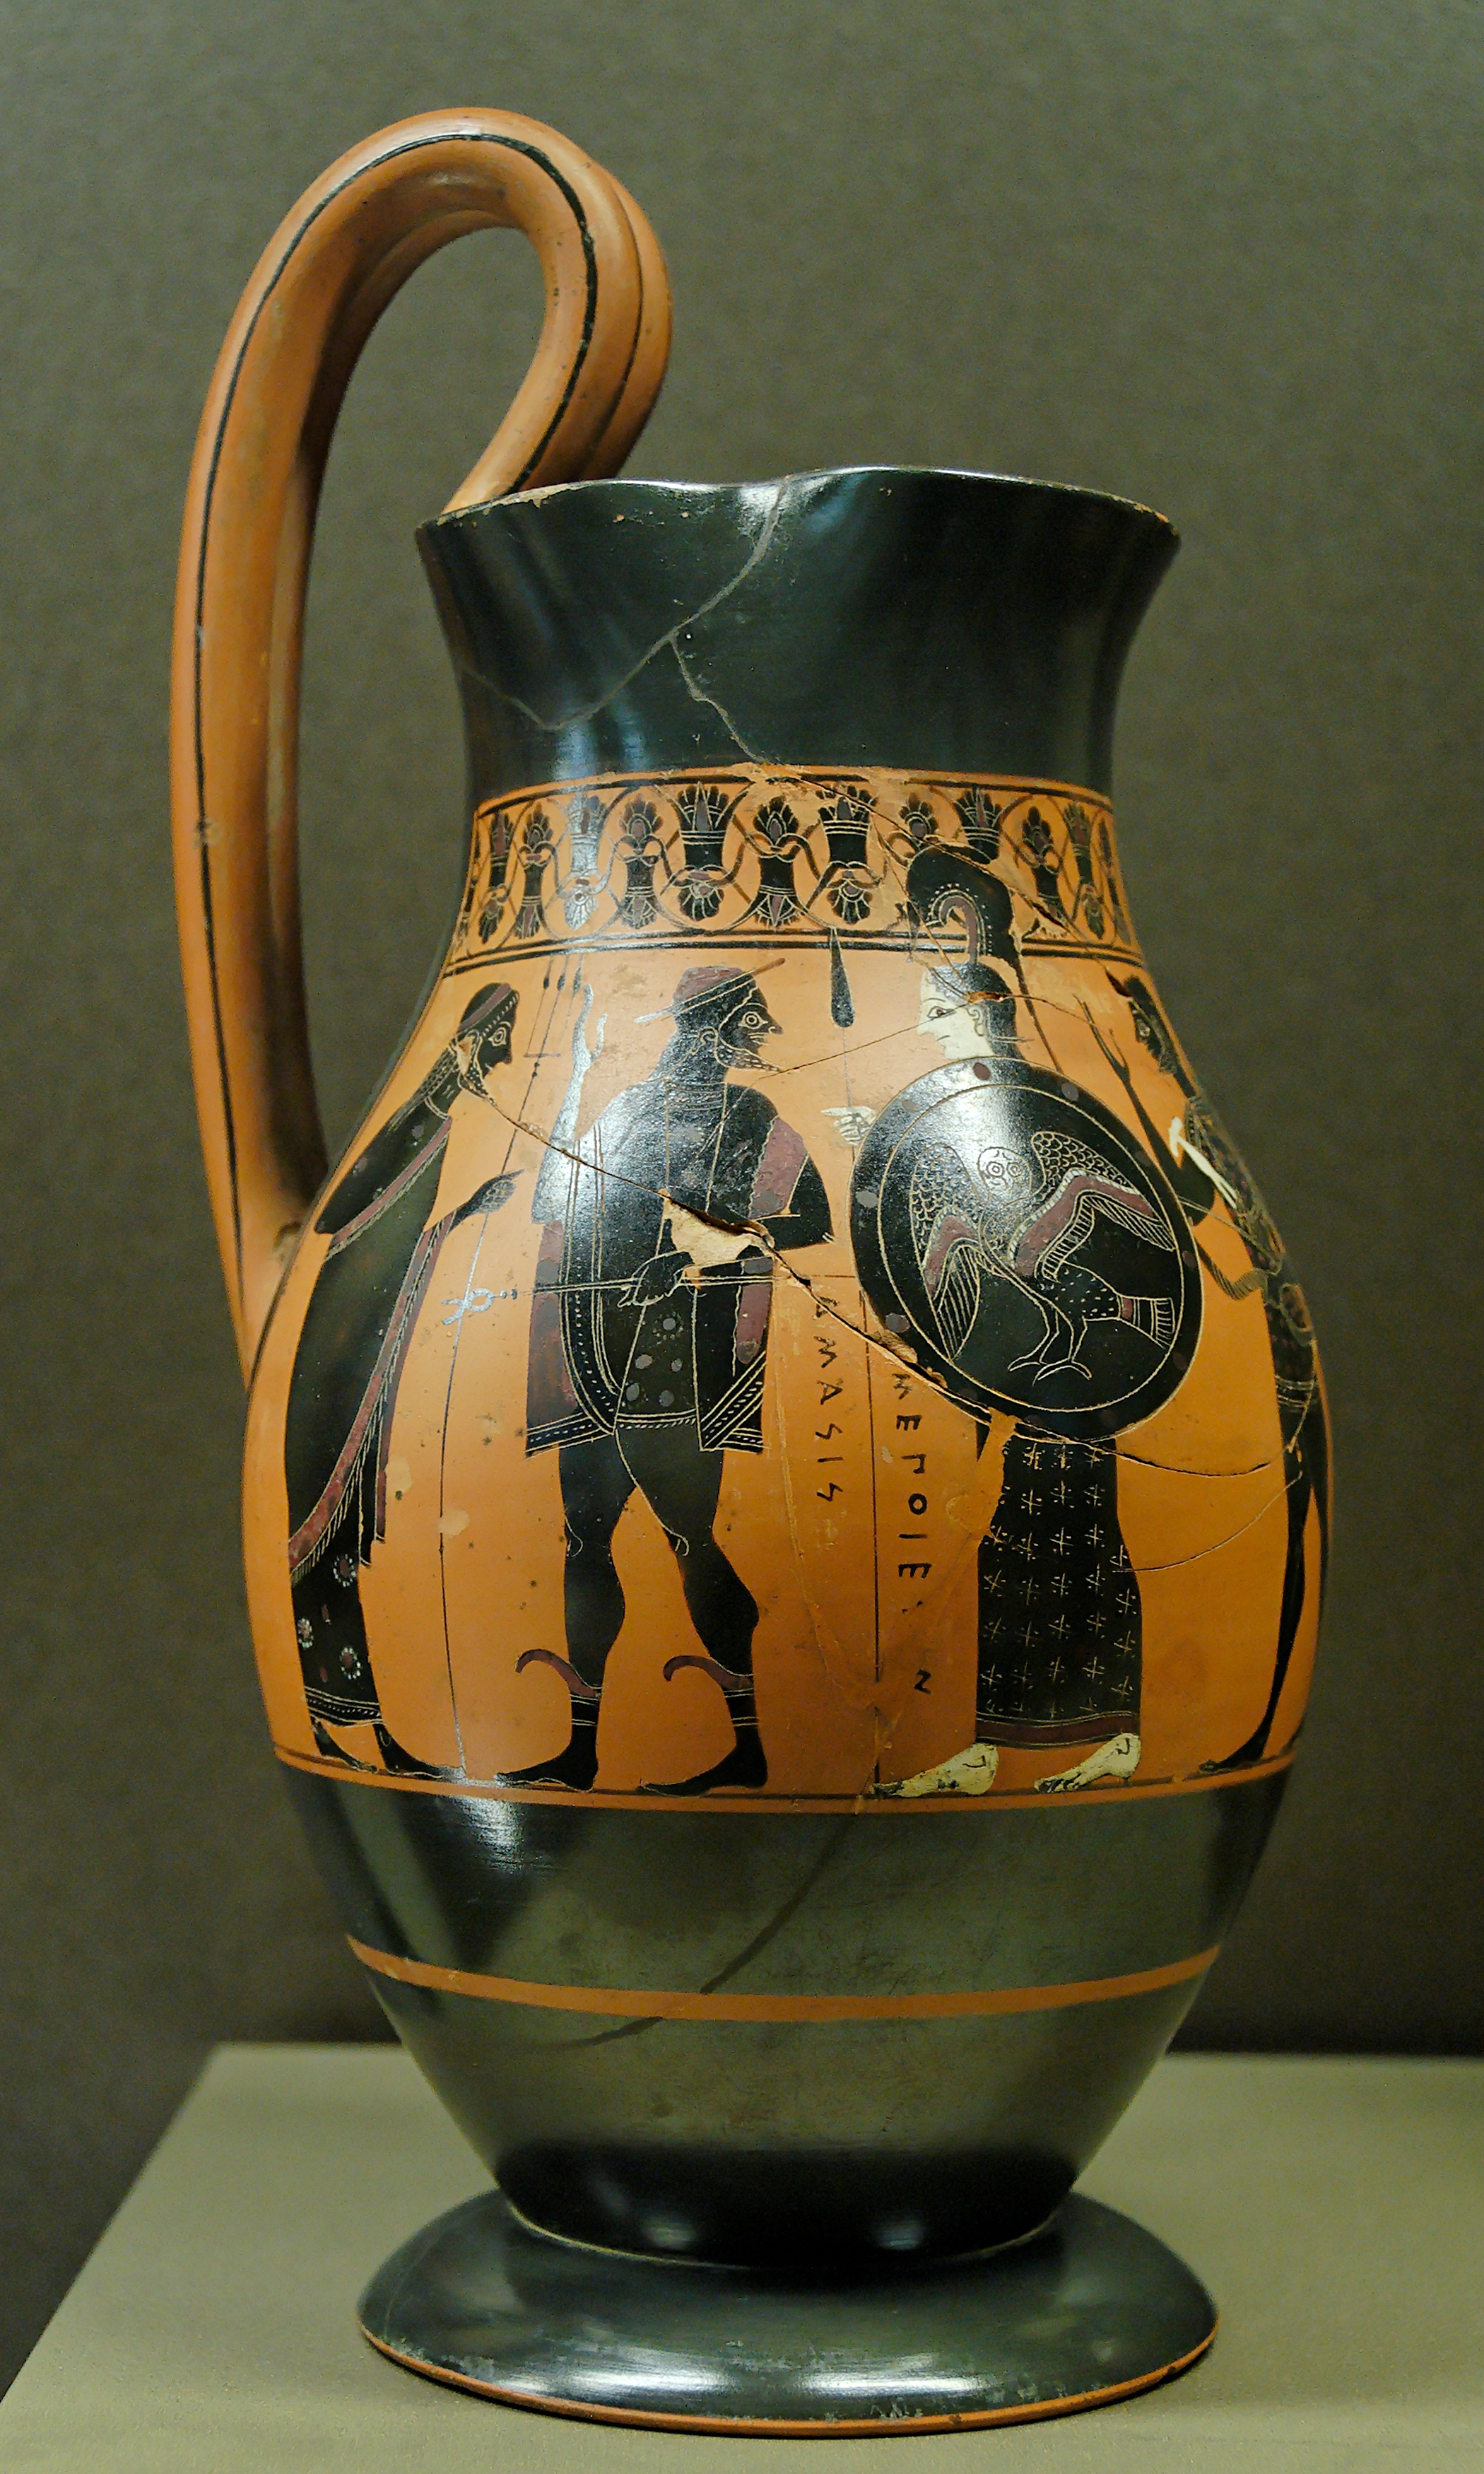 http://upload.wikimedia.org/wikipedia/commons/5/52/Herakles_Olympos_Louvre_F30_full.jpg